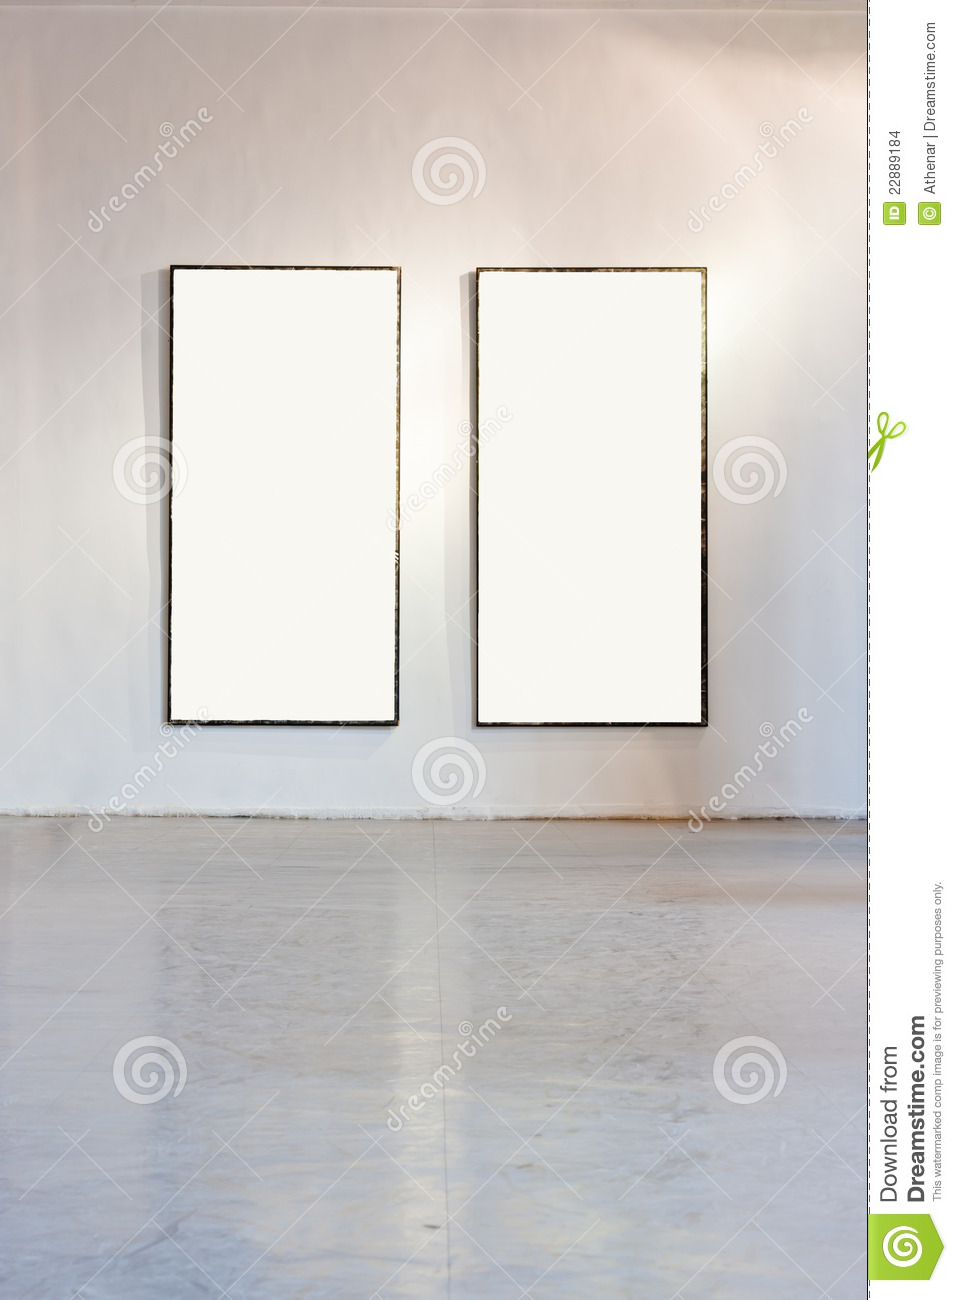 Blank Frame On The Wall At Art Gallery Stock Photo - Image of floor ...